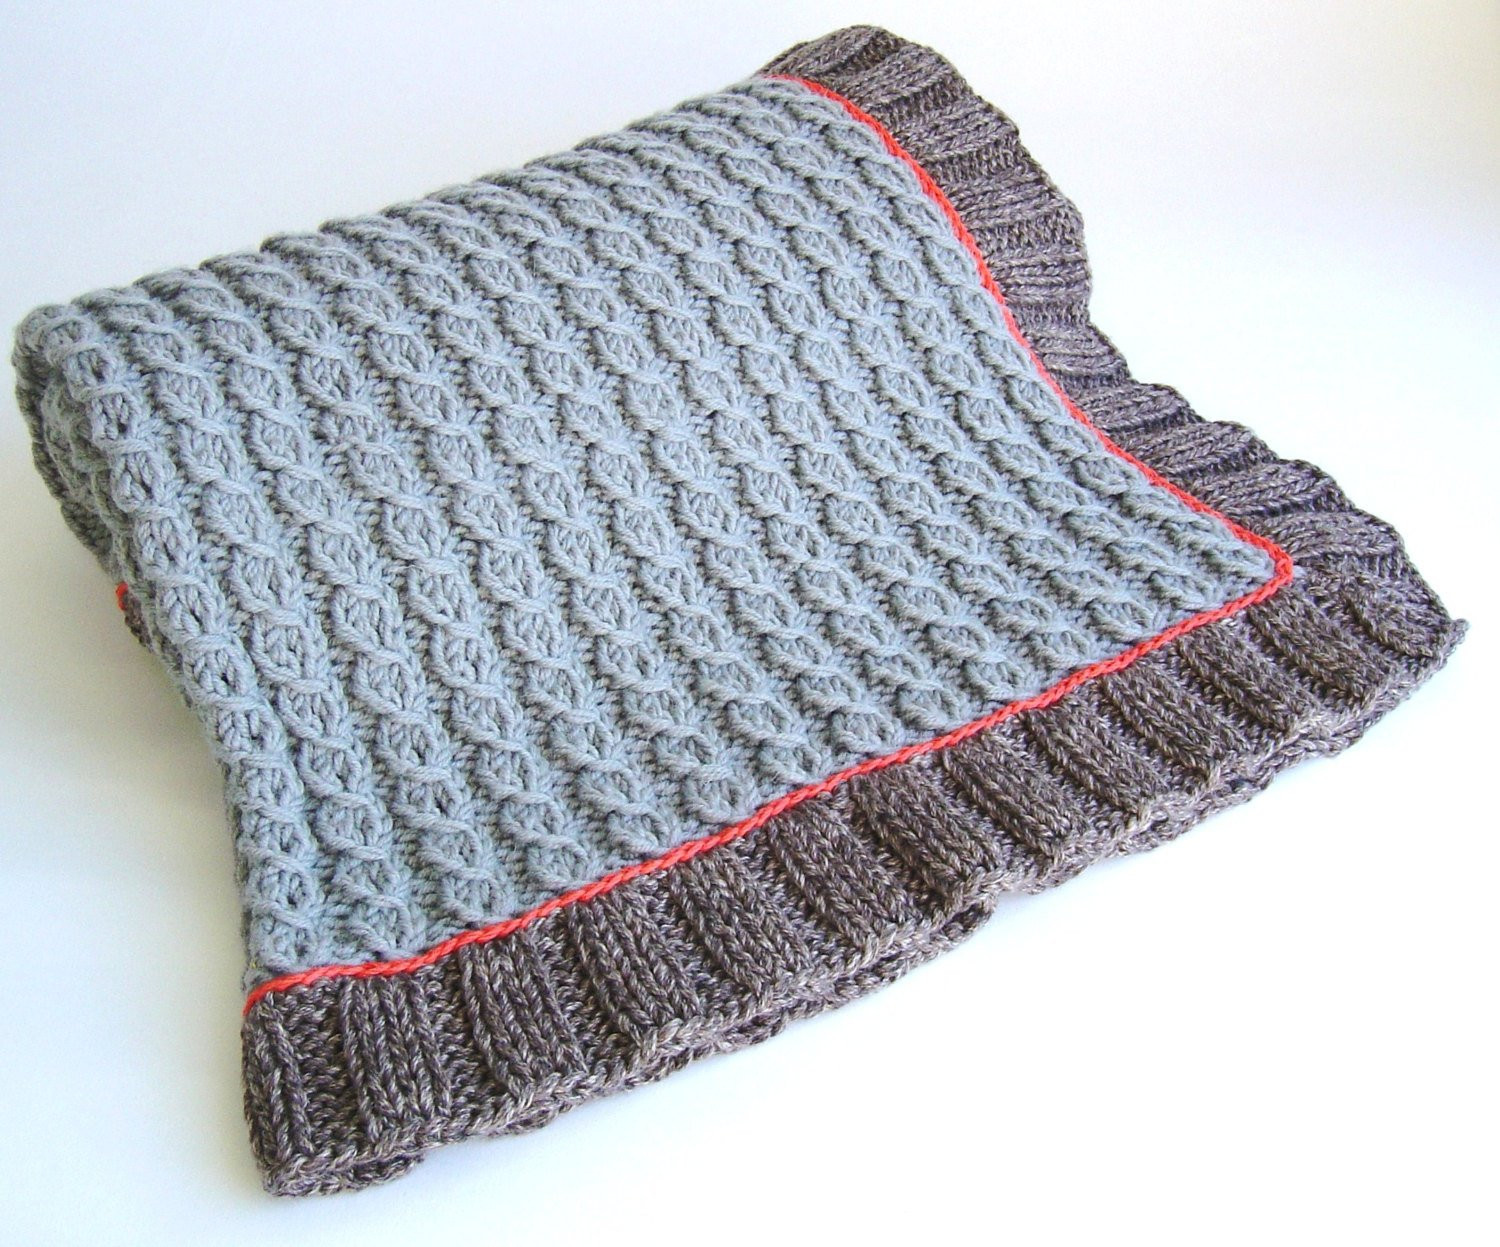 Easy Knitting Patterns New Knitting Pattern Mock Cable Baby Blanket Easy Knit Lap Blanket Of Superb 44 Ideas Easy Knitting Patterns